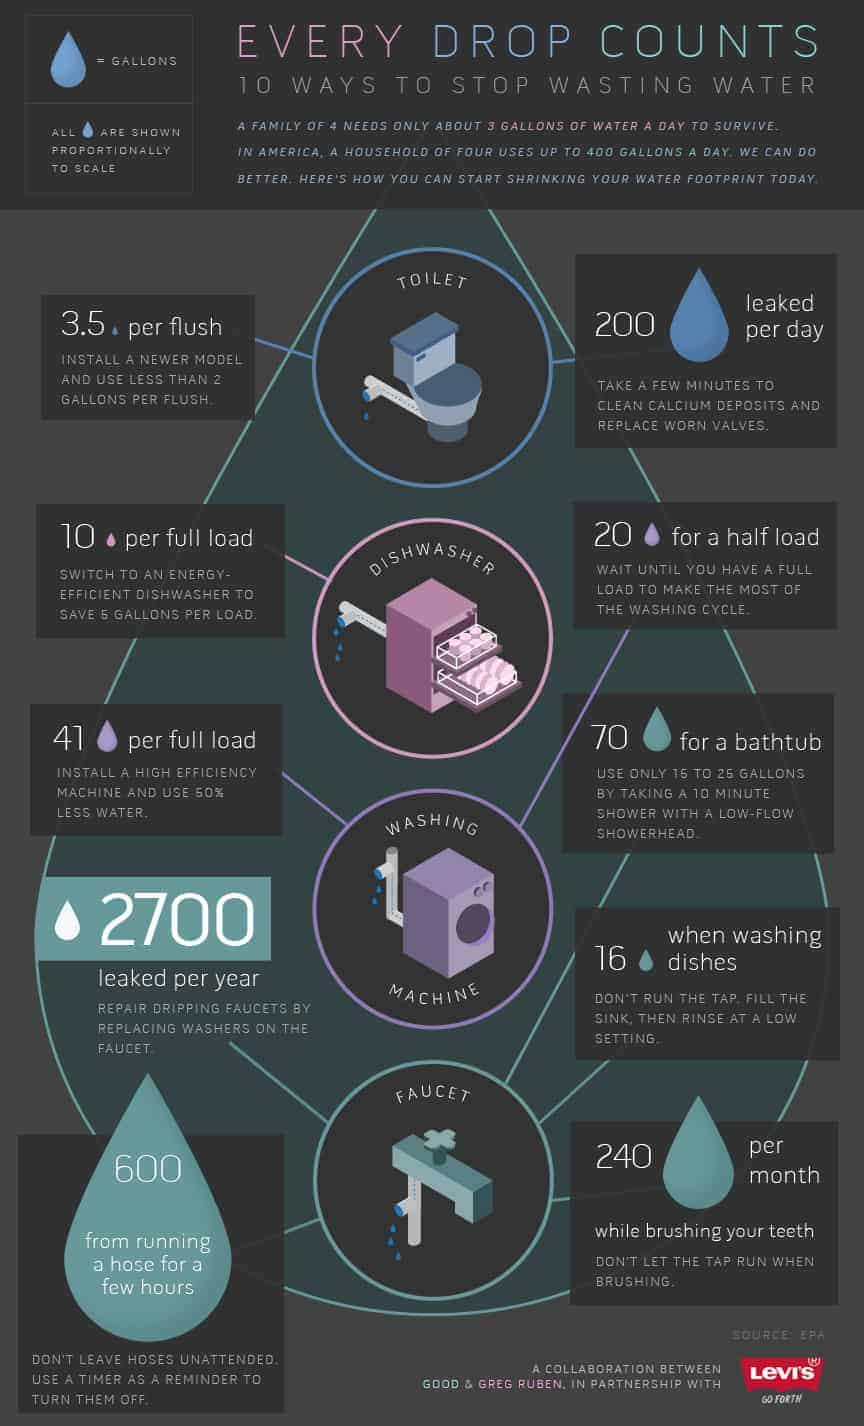 10 Ways to Stop Wasting Water Infographic